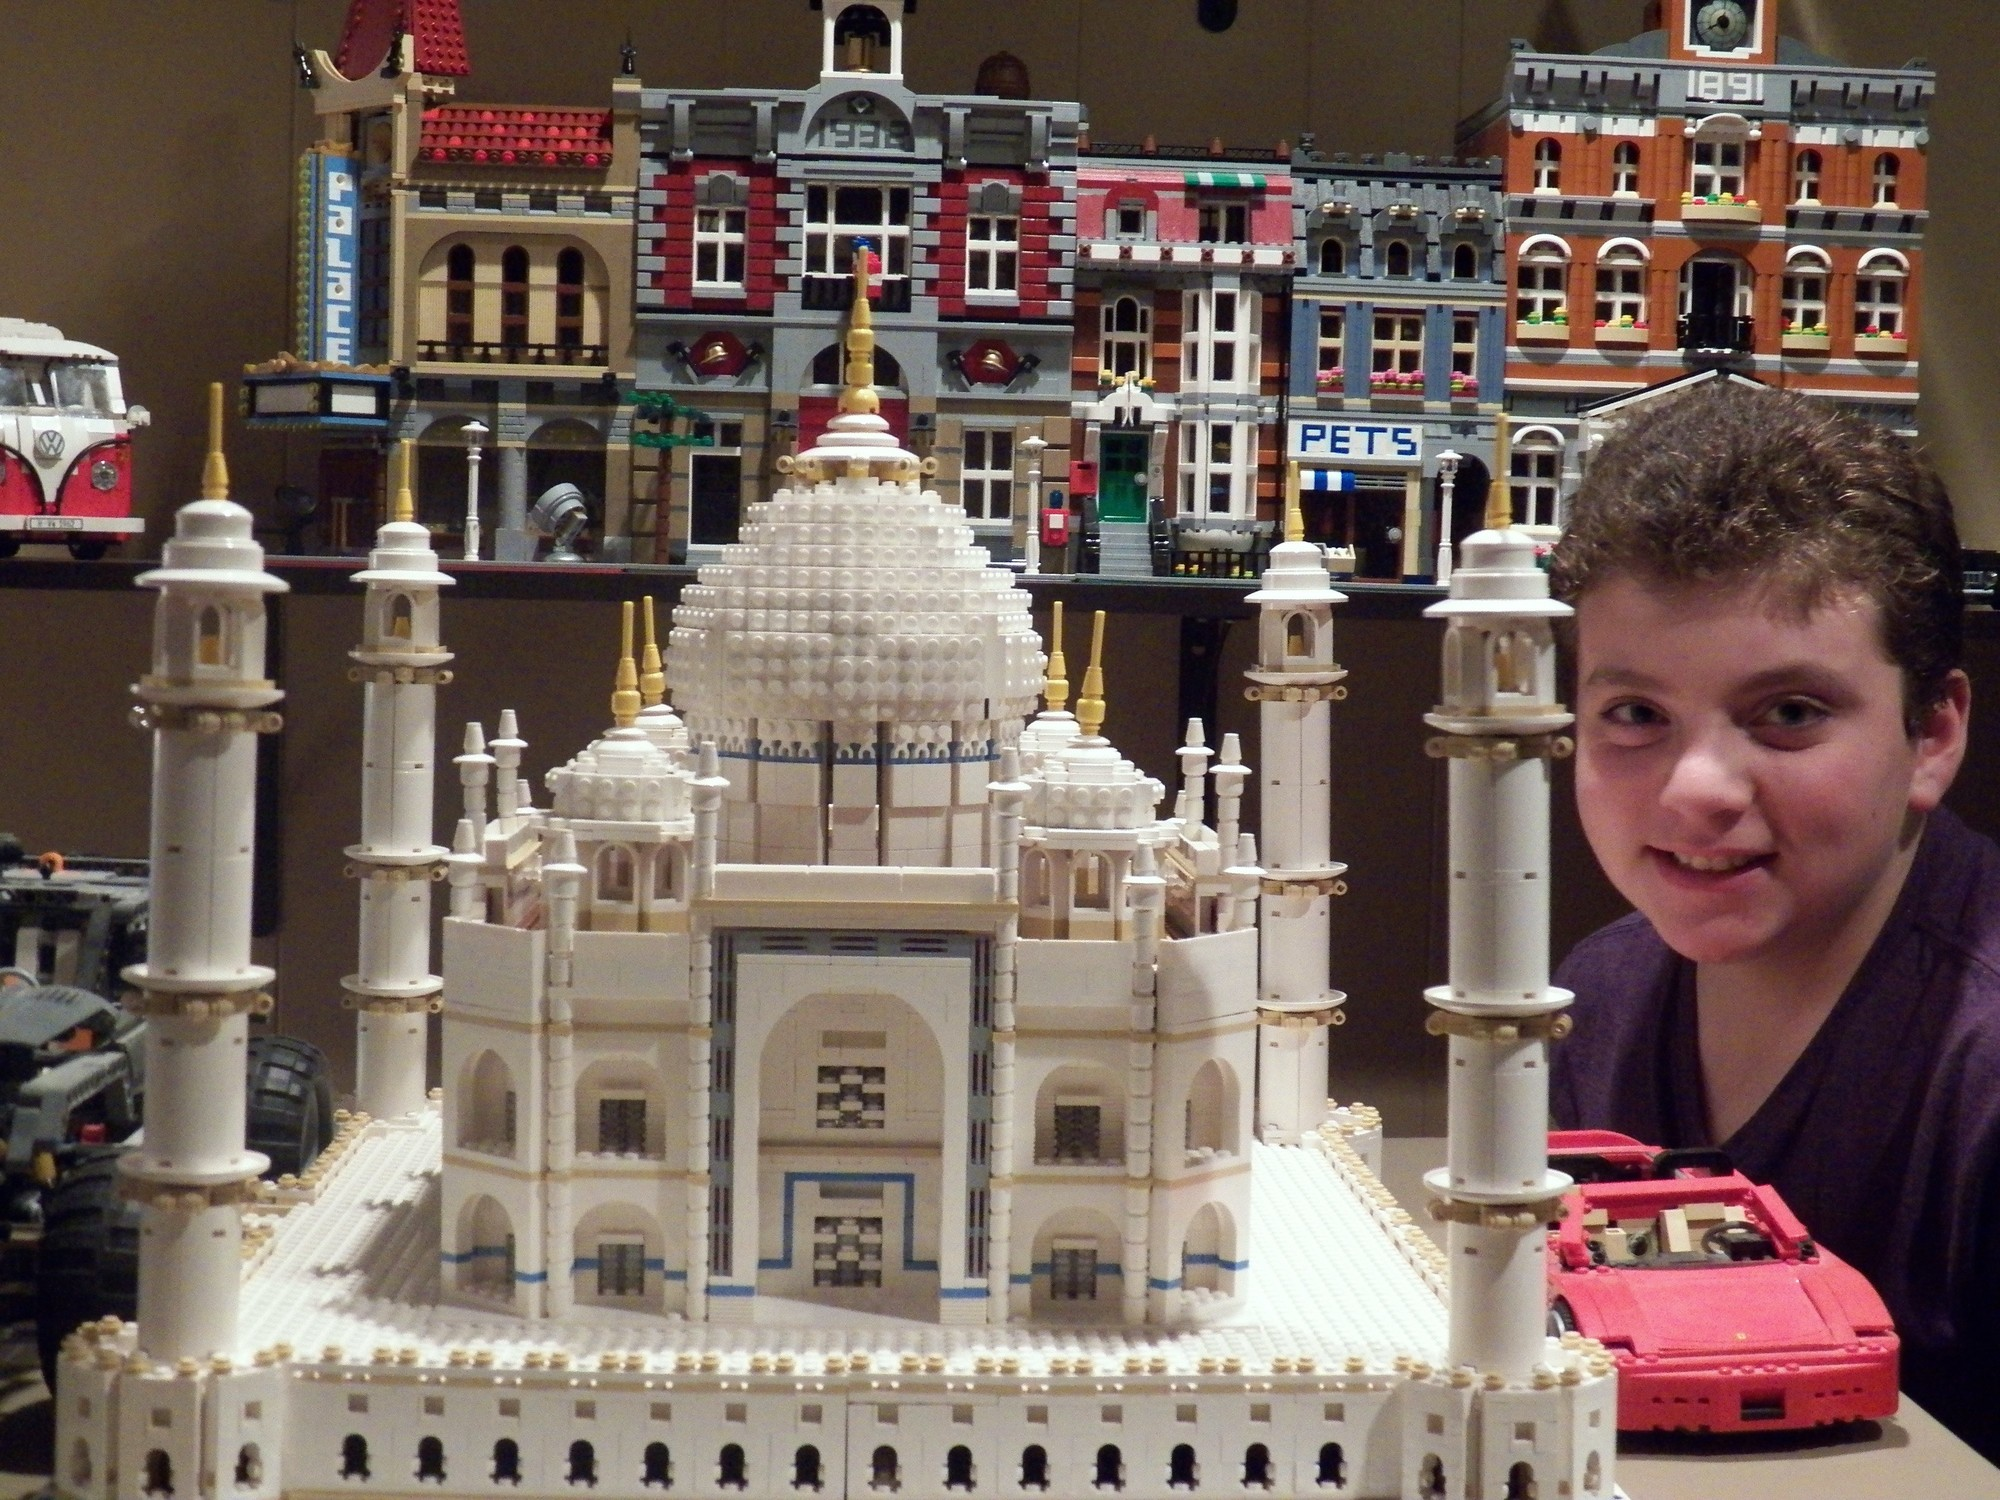 Shane Weiner, a Woodland Middle School student, constructed a 6,000-piece Lego   replica of the Taj Mahal, which served as the centerpiece of his Jan. 18 bar mitzvah at the Bridgeview Yacht Club in Island Park.